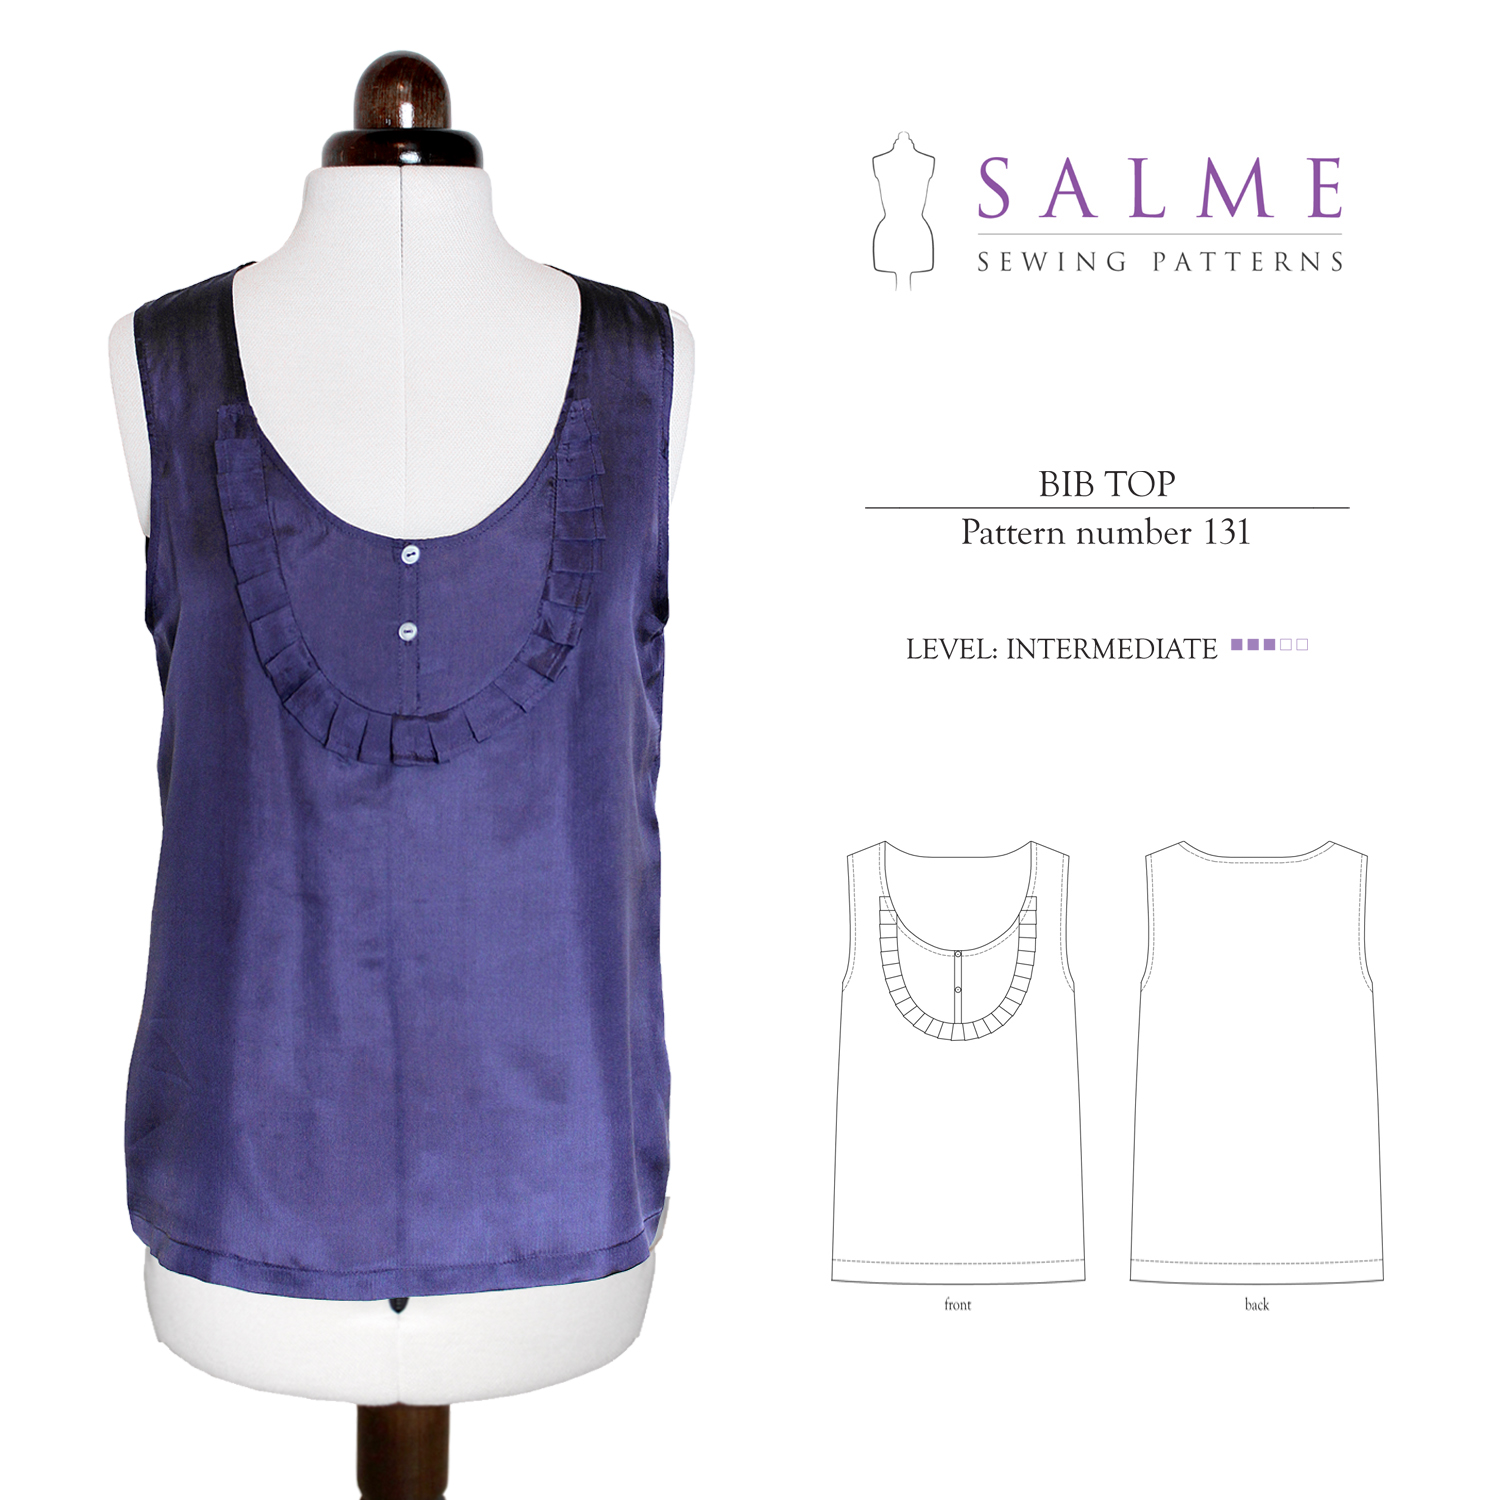 Salme Sewing Patterns Bib Top Downloadable Pattern 131